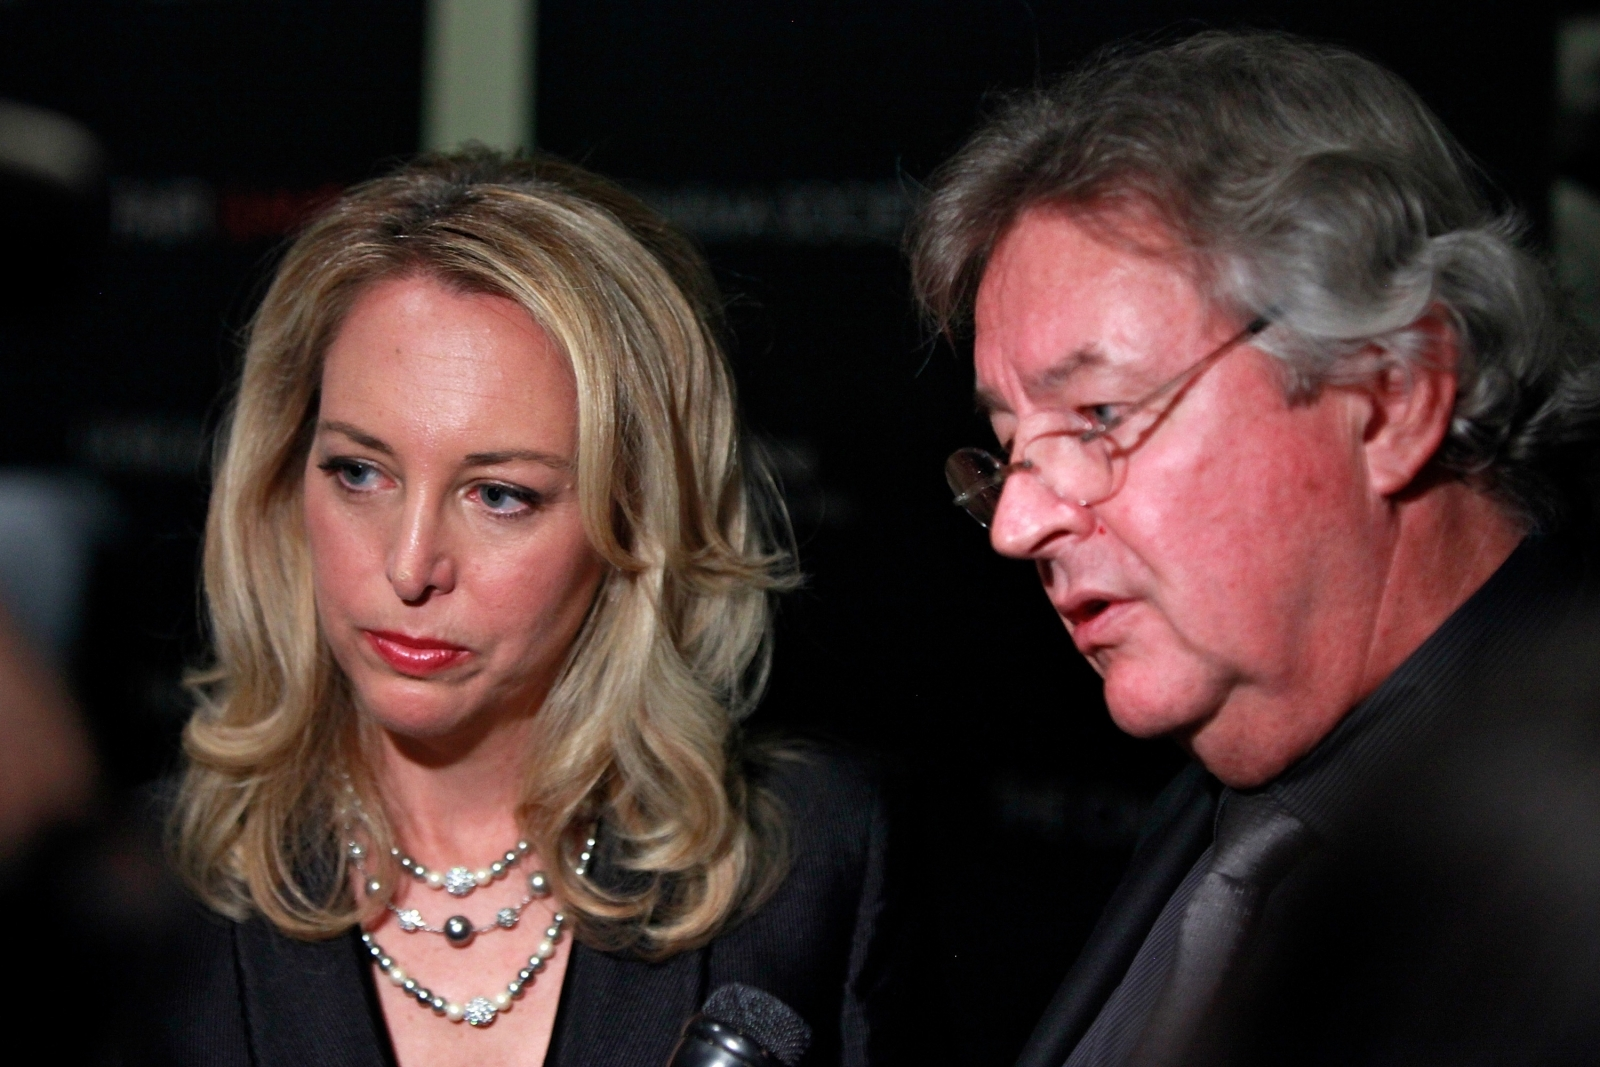 Valerie Plame Wilson (l), a former CIA Operations Officer and Joe Wilson (r), a former US diplomat